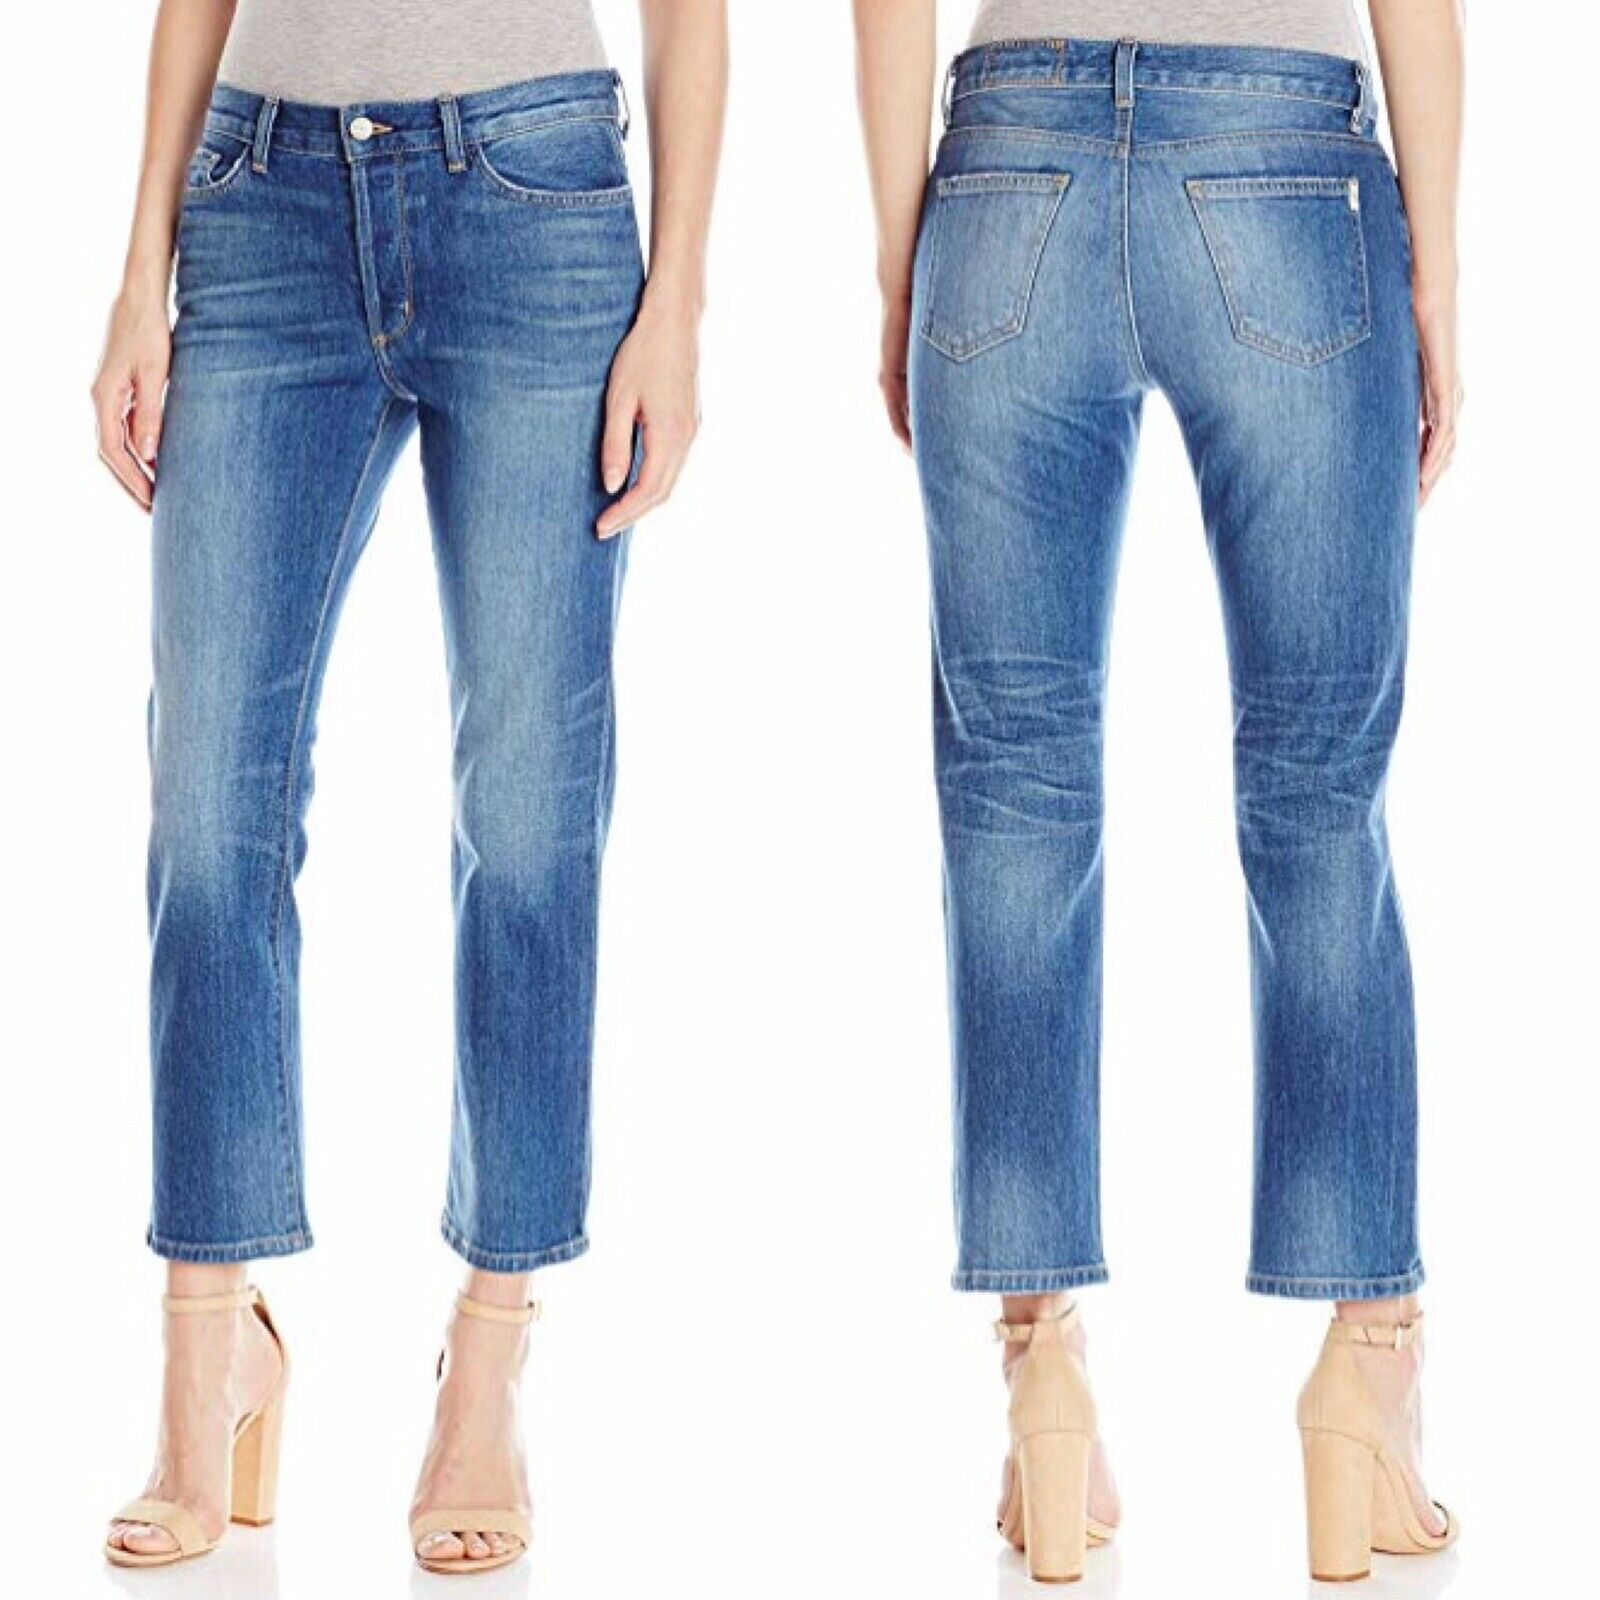 Siwy Jane B Crop Coupe Droite Jeans Dans Live Wire taille 26 Retail  179